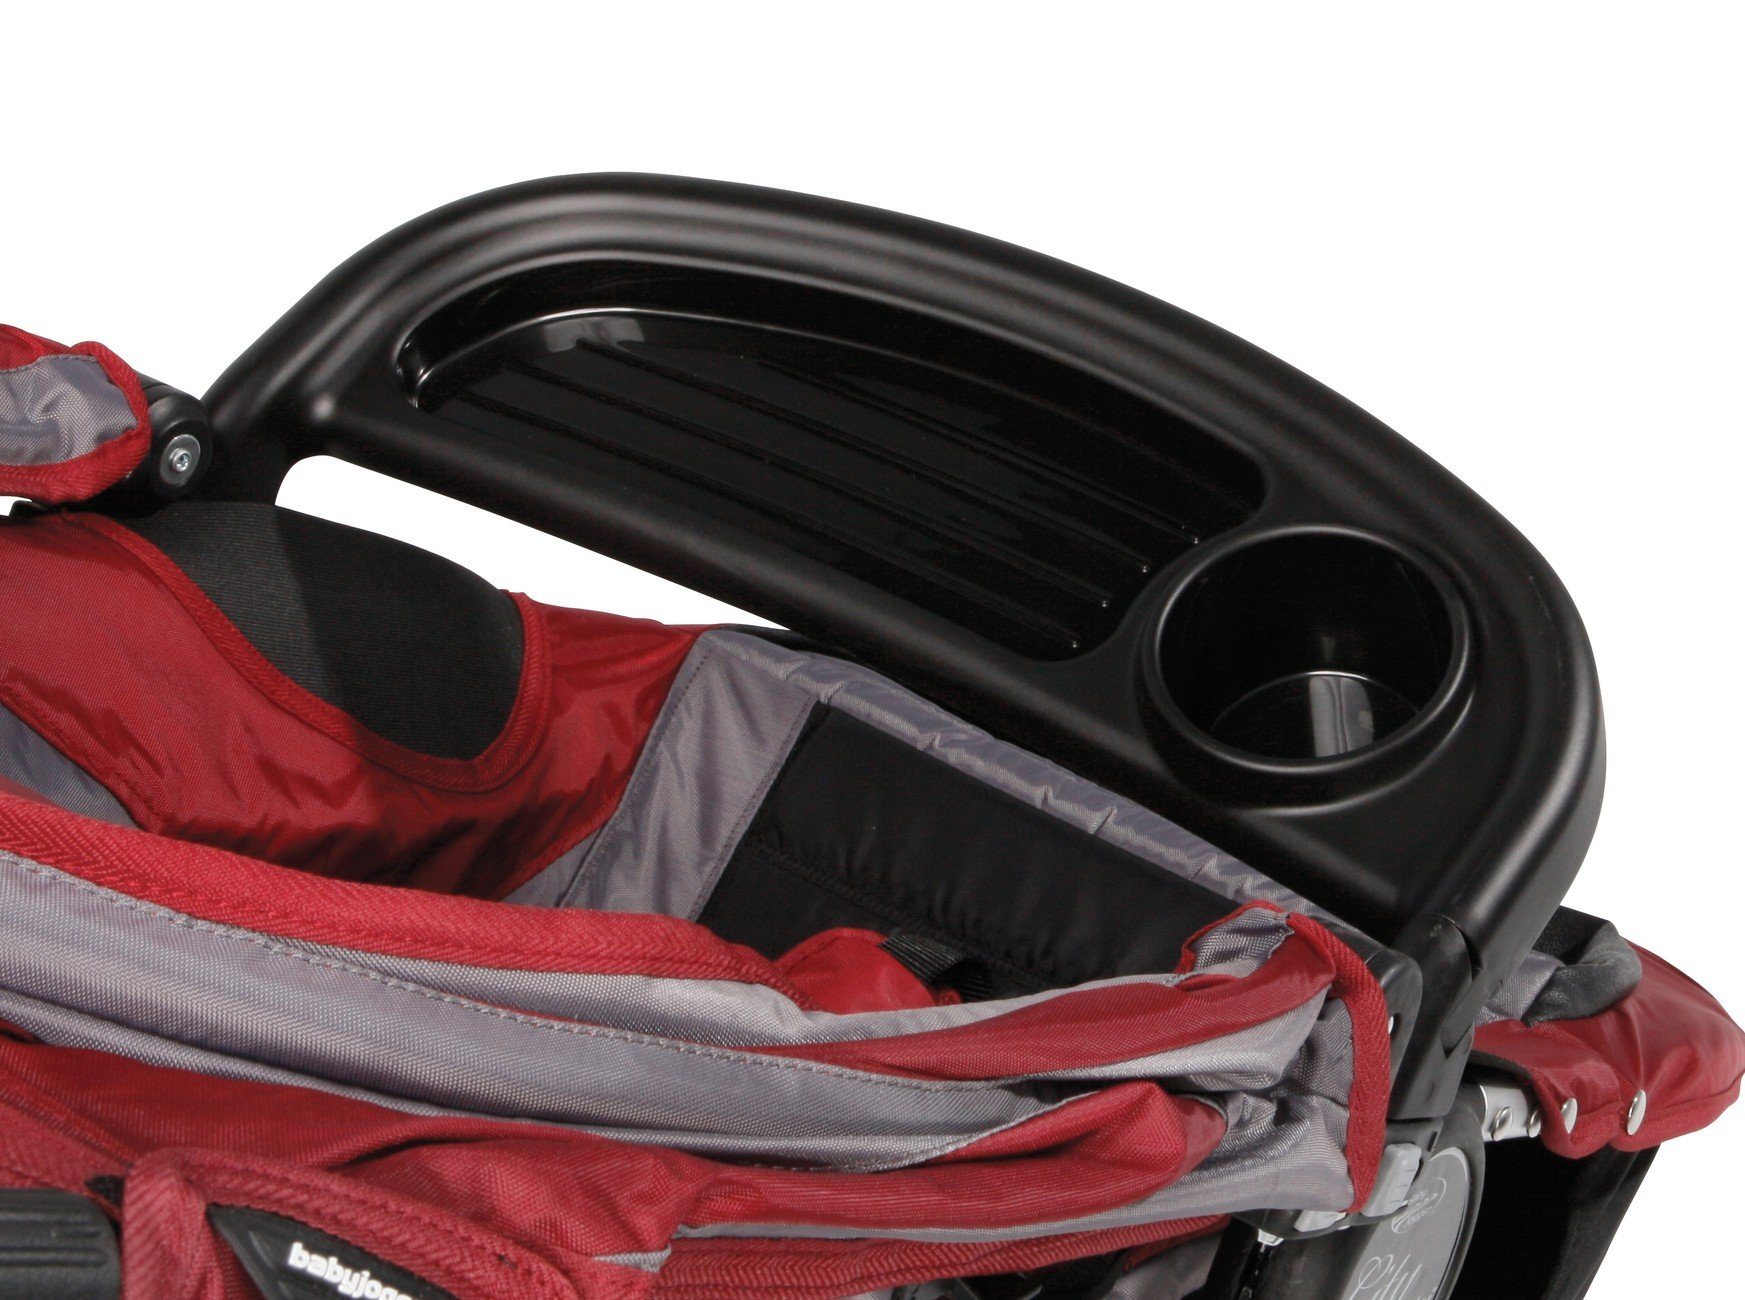 Baby Jogger Child Tray - Black - One Size - City Mini/Classic/Elite/Summit by Baby Jogger (Image #3)